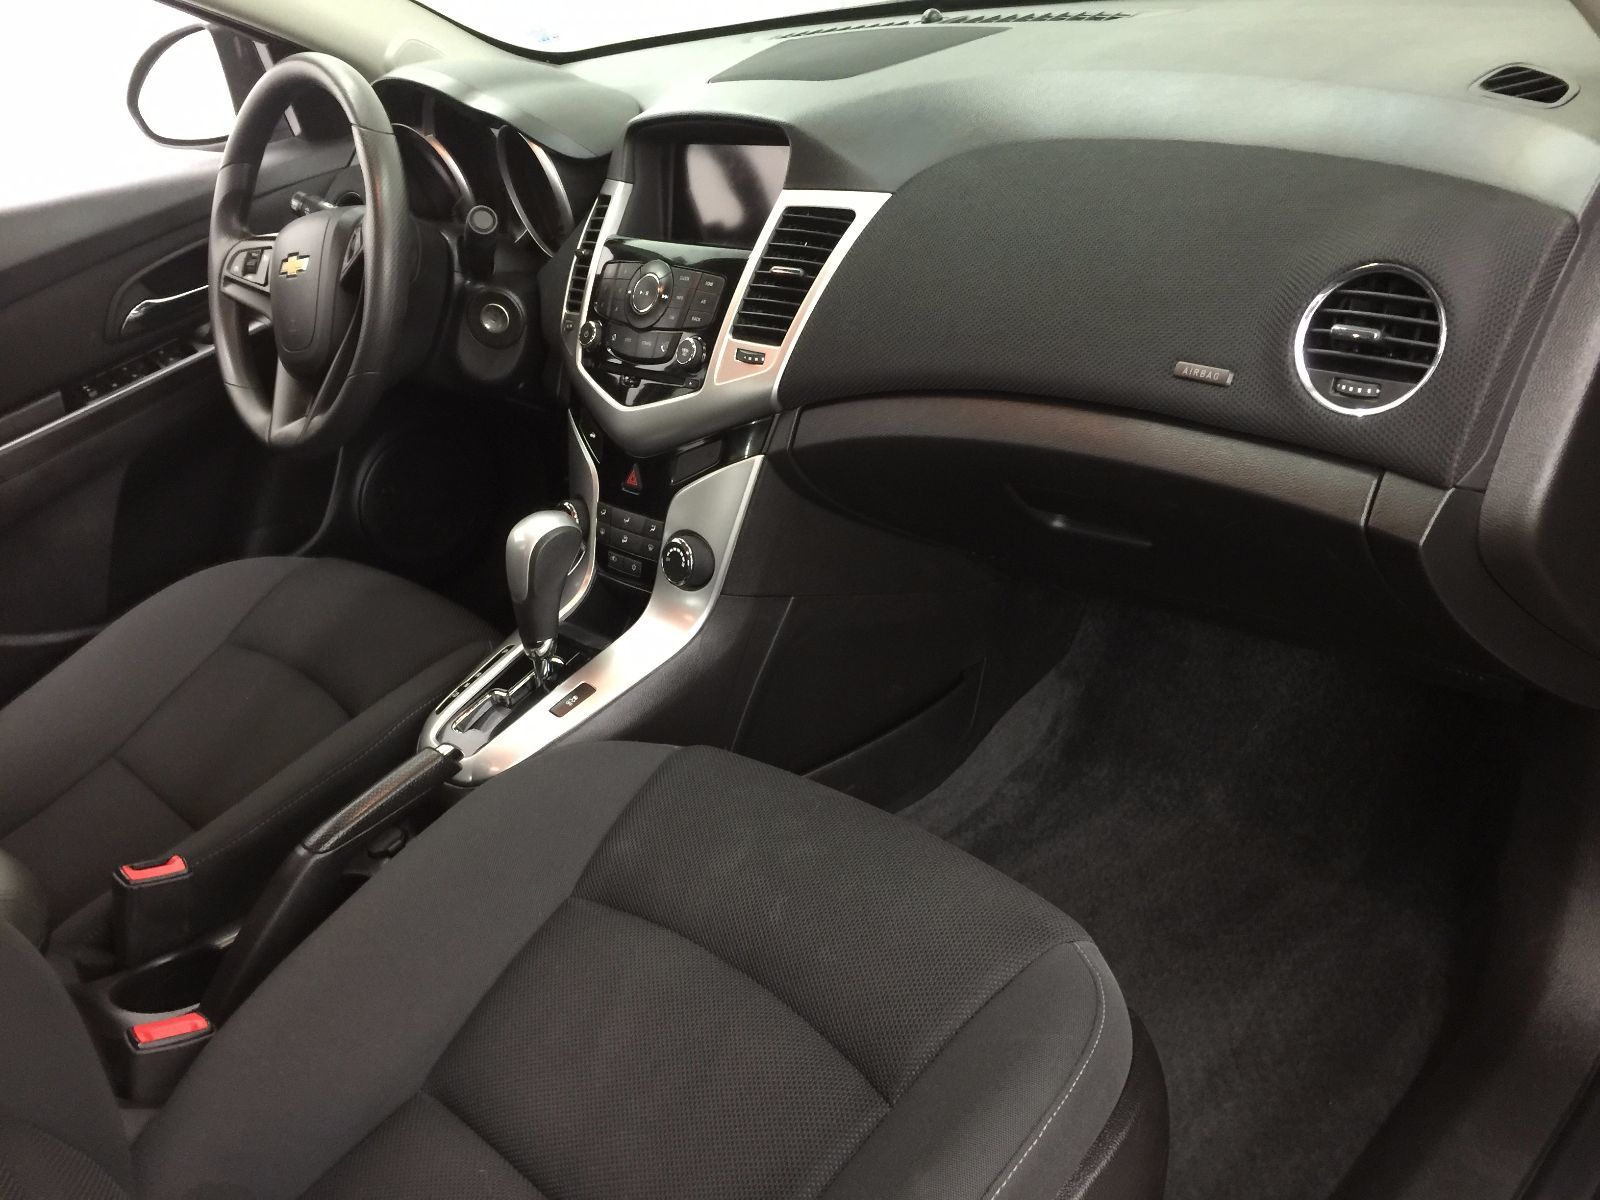 watson cruze vehicle photo new vehiclesearchresults pa in chevrolet vehicles blairsville for sale